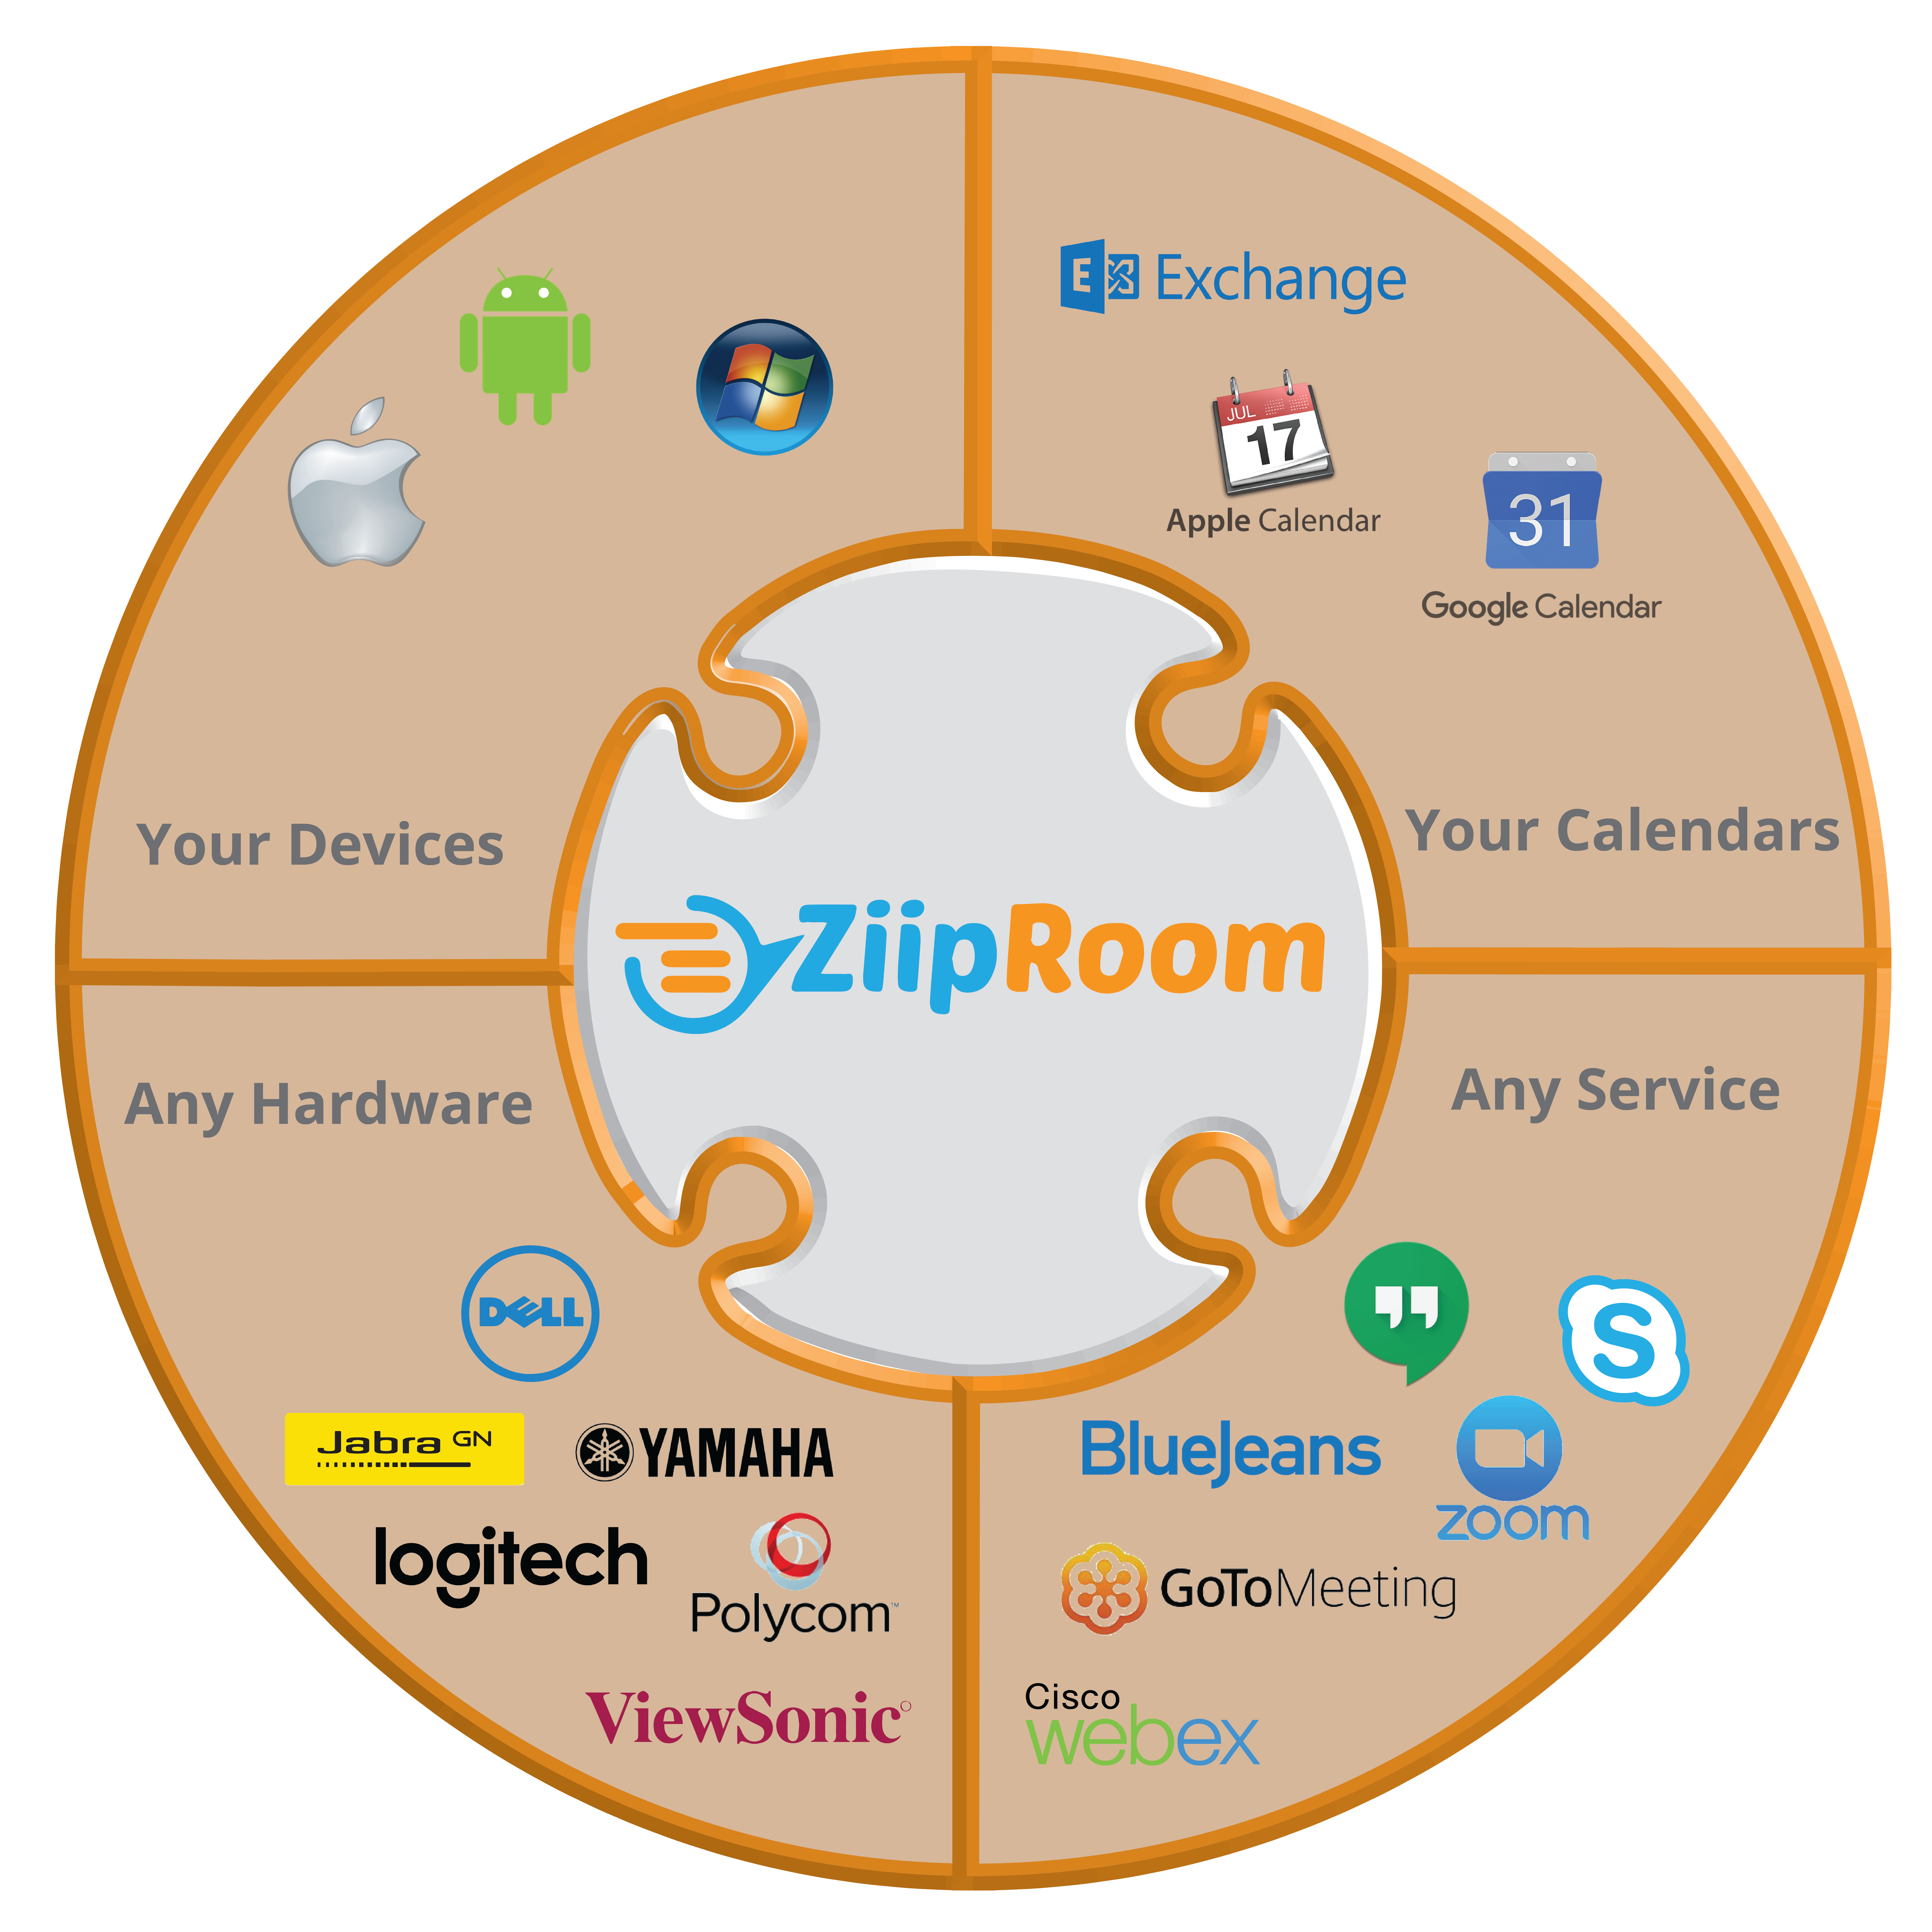 ZiipRoom Aims to Eliminate Meeting Pains | Insight for the Connected